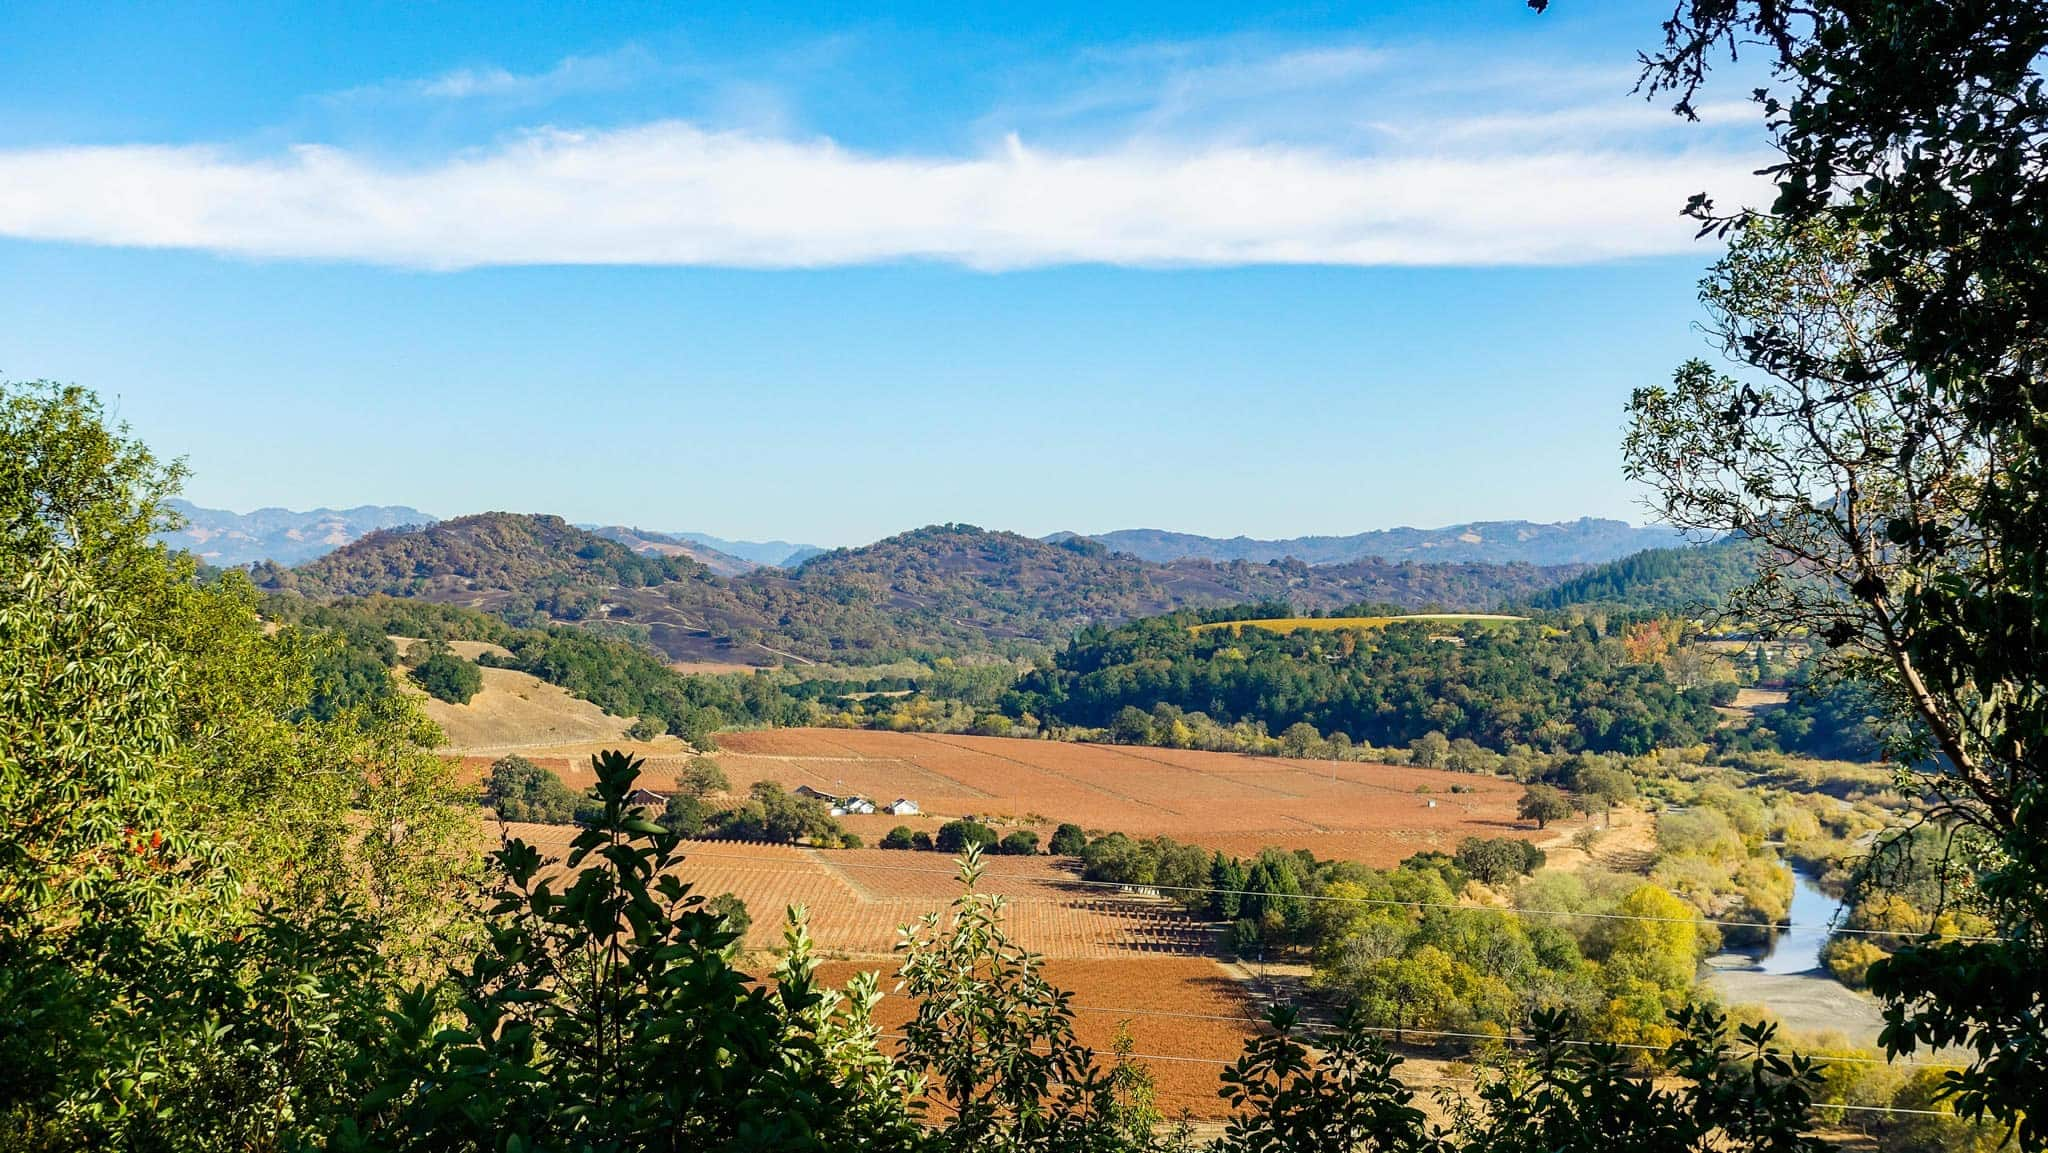 Hike Up to the High Bench View at Open Range Preserve in Healdsburg - Beautiful in Autumn